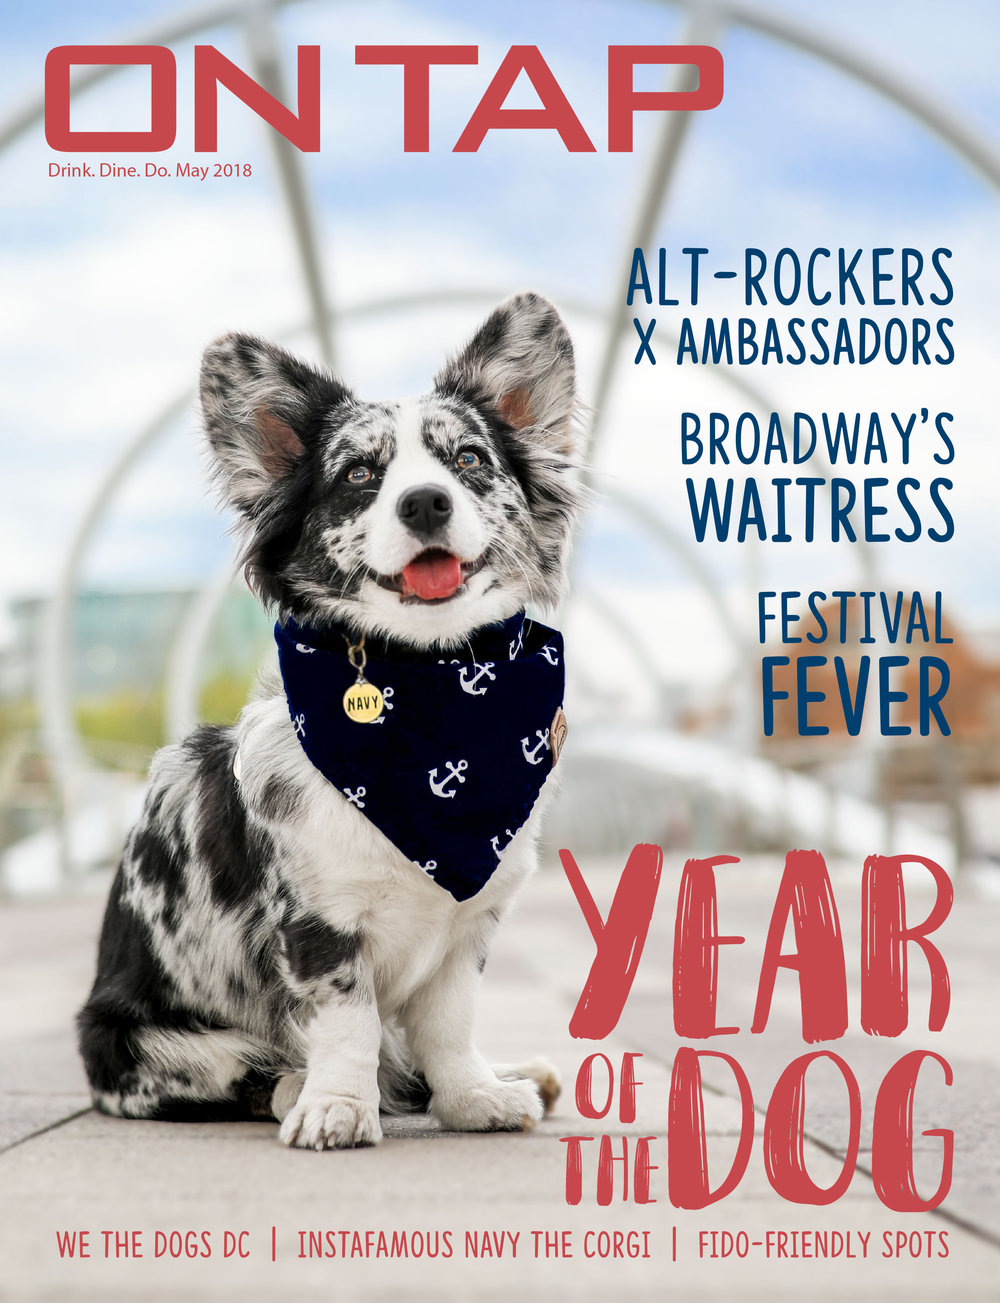 LG Photography photographed Navy the Corgi for the cover of On Tap Magazine's May 2018 issue.